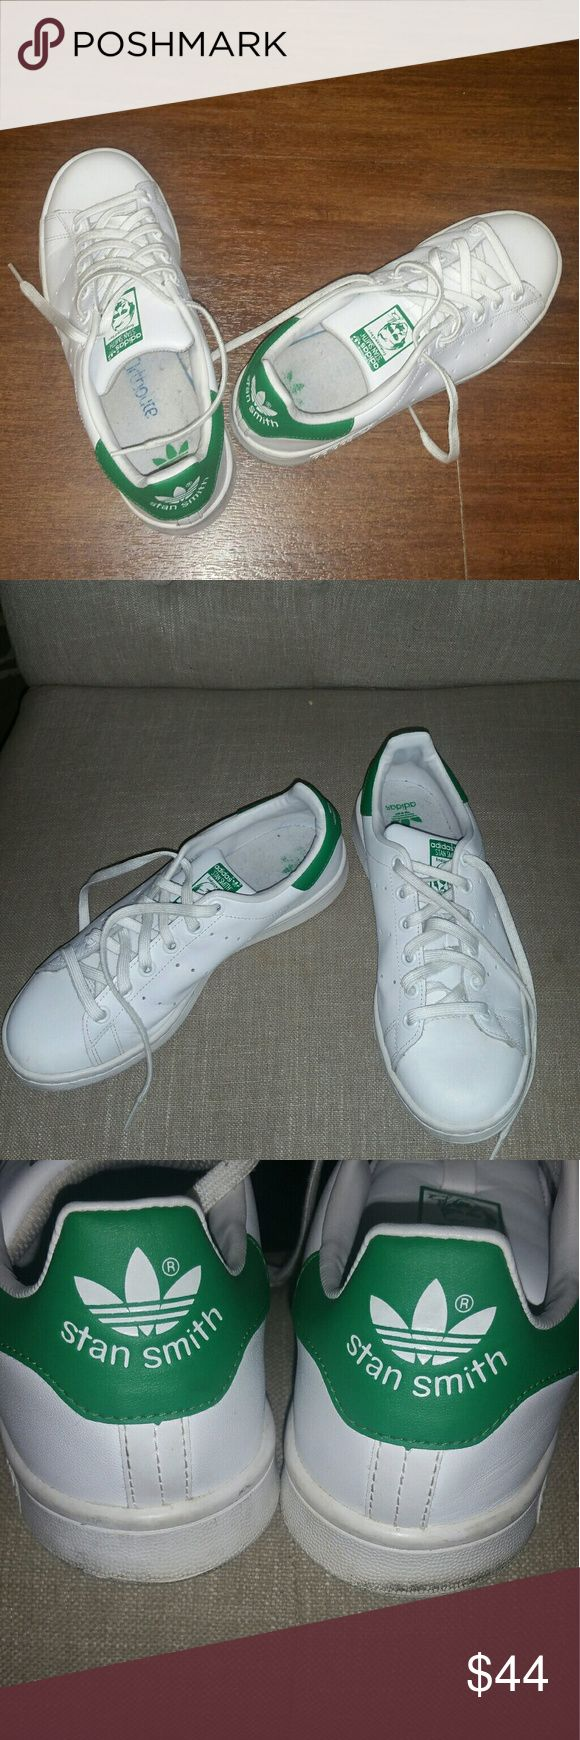 Adidas women original Stan Smith tennis shoes sz 8 Adidas classic women original Stan Smith tennis shoes sz 8.  Great condition...gently worn only a few times. Sz 6 men. 8 women size. adidas Shoes Sneakers